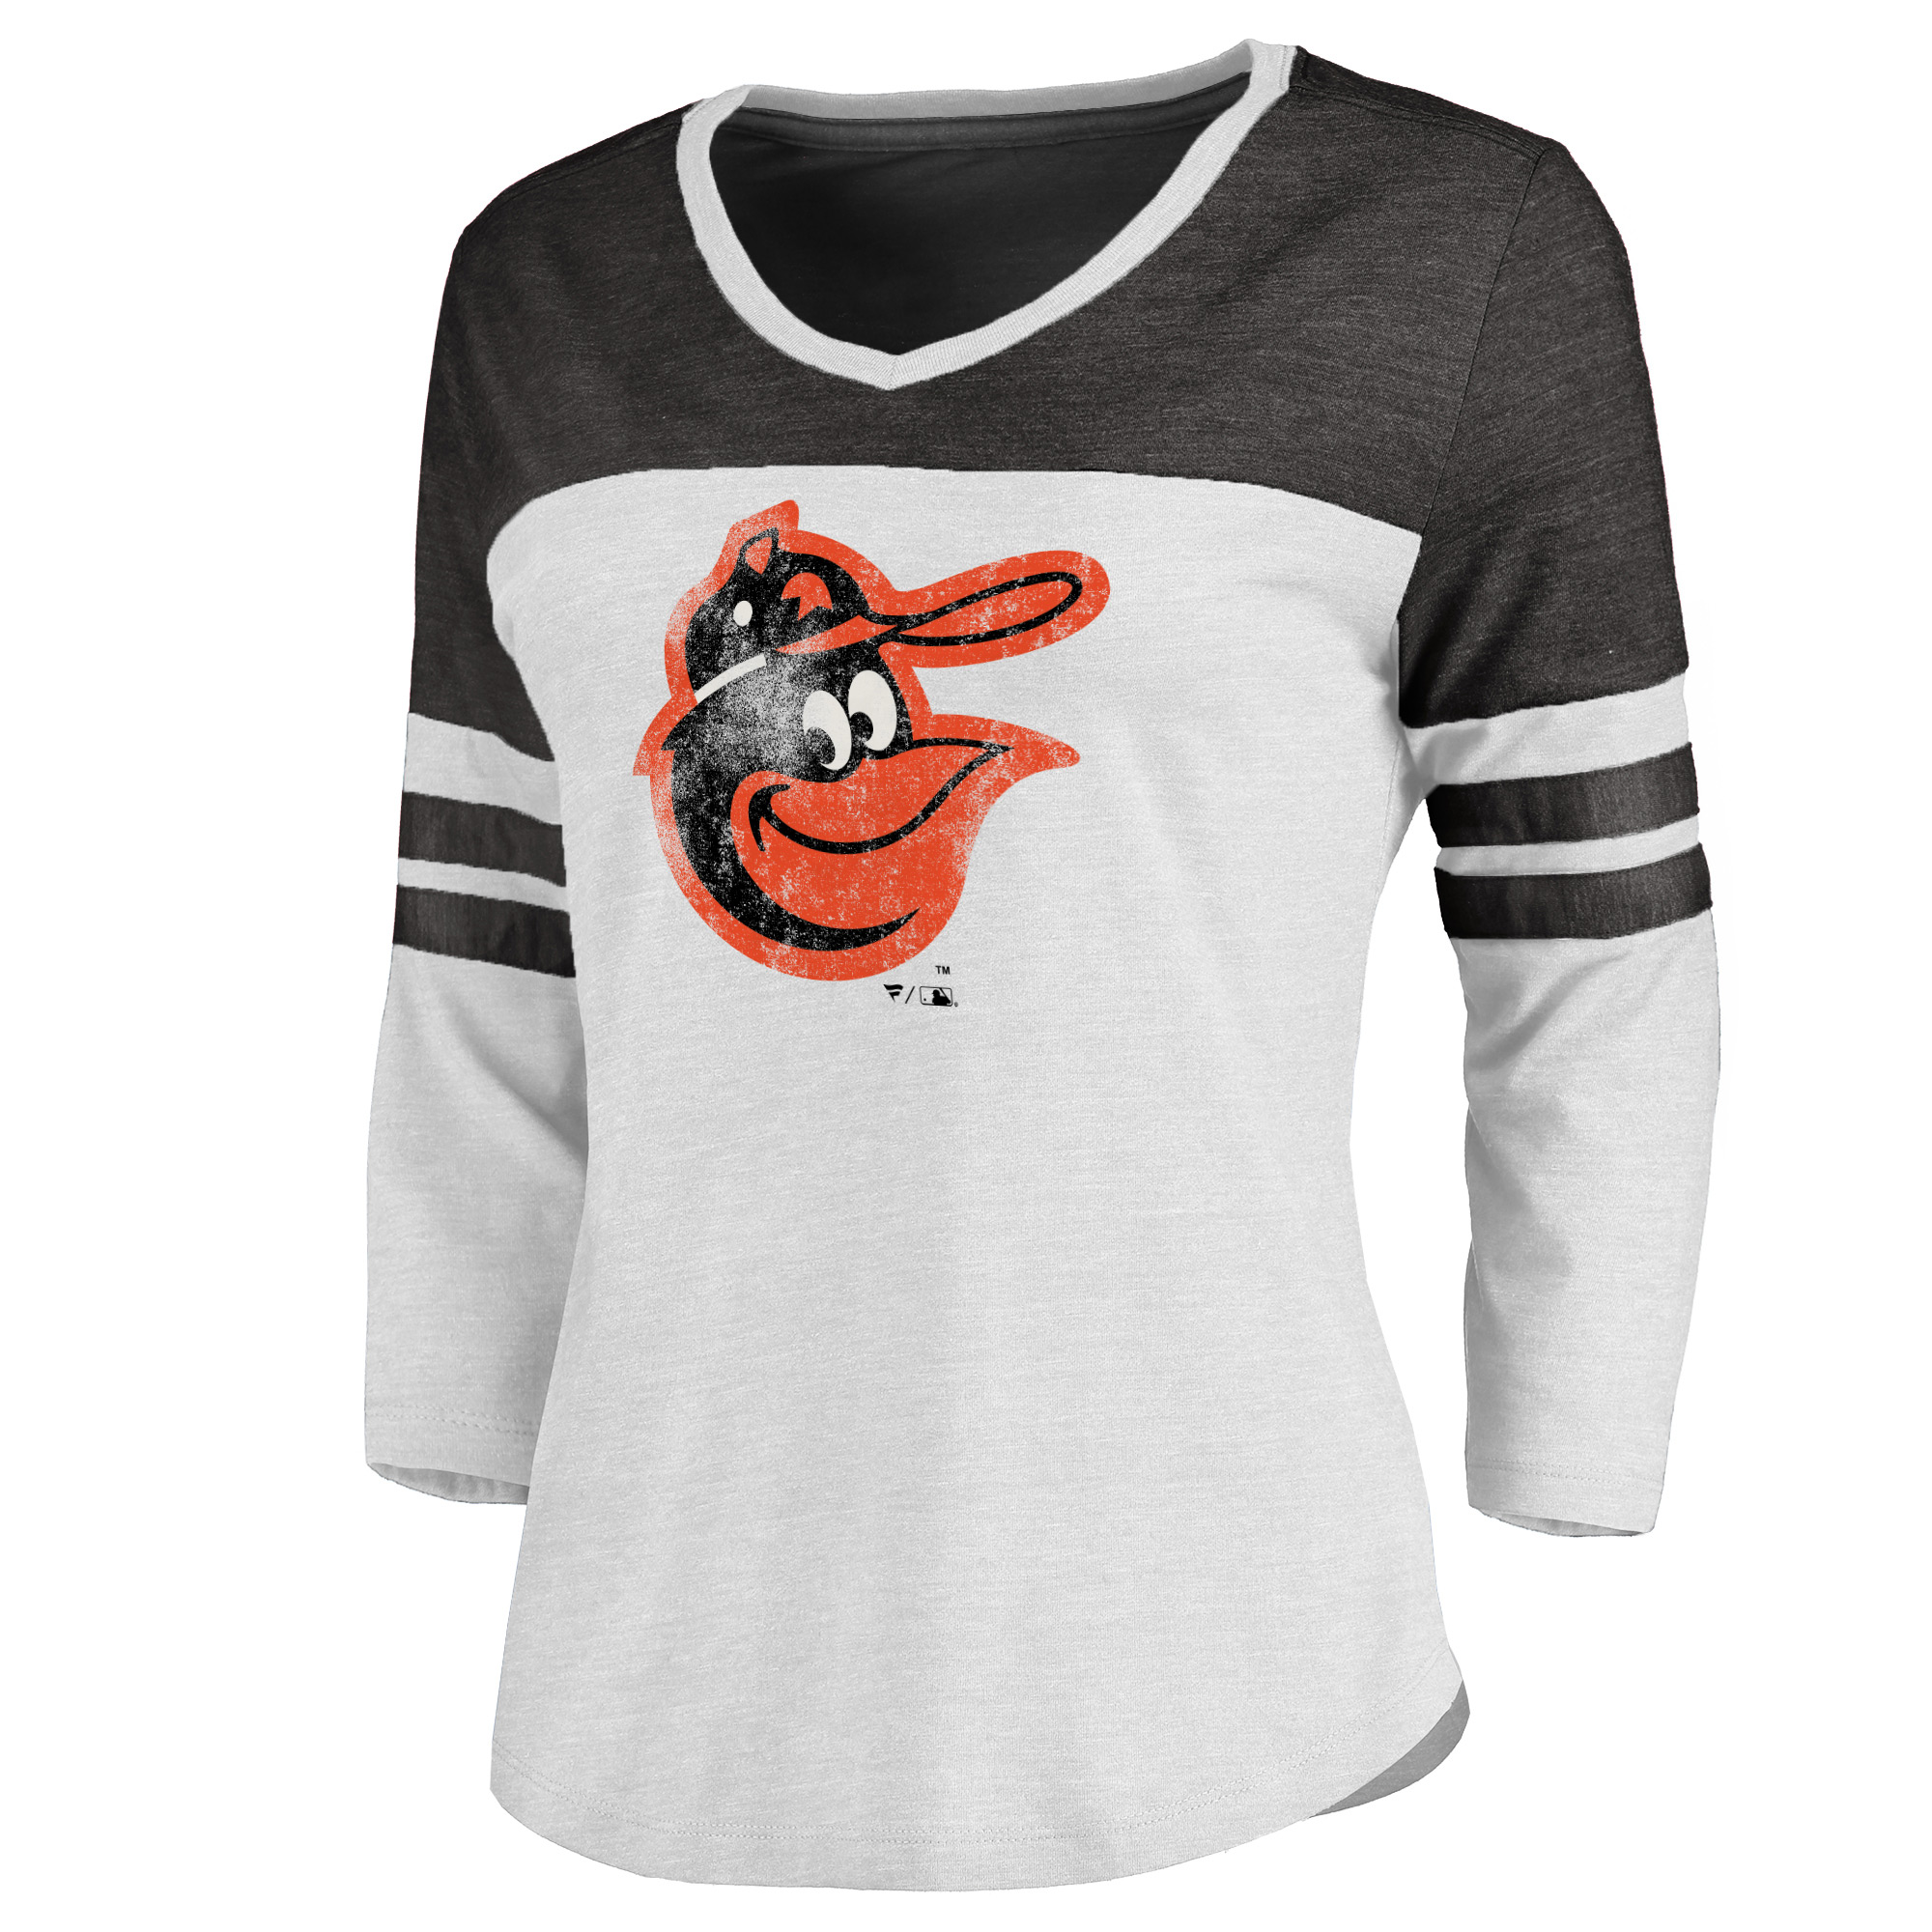 Baltimore Orioles Women's Cooperstown Two Tone Three-Quarter Sleeve Tri-Blend T-Shirt - White/Heathered Black